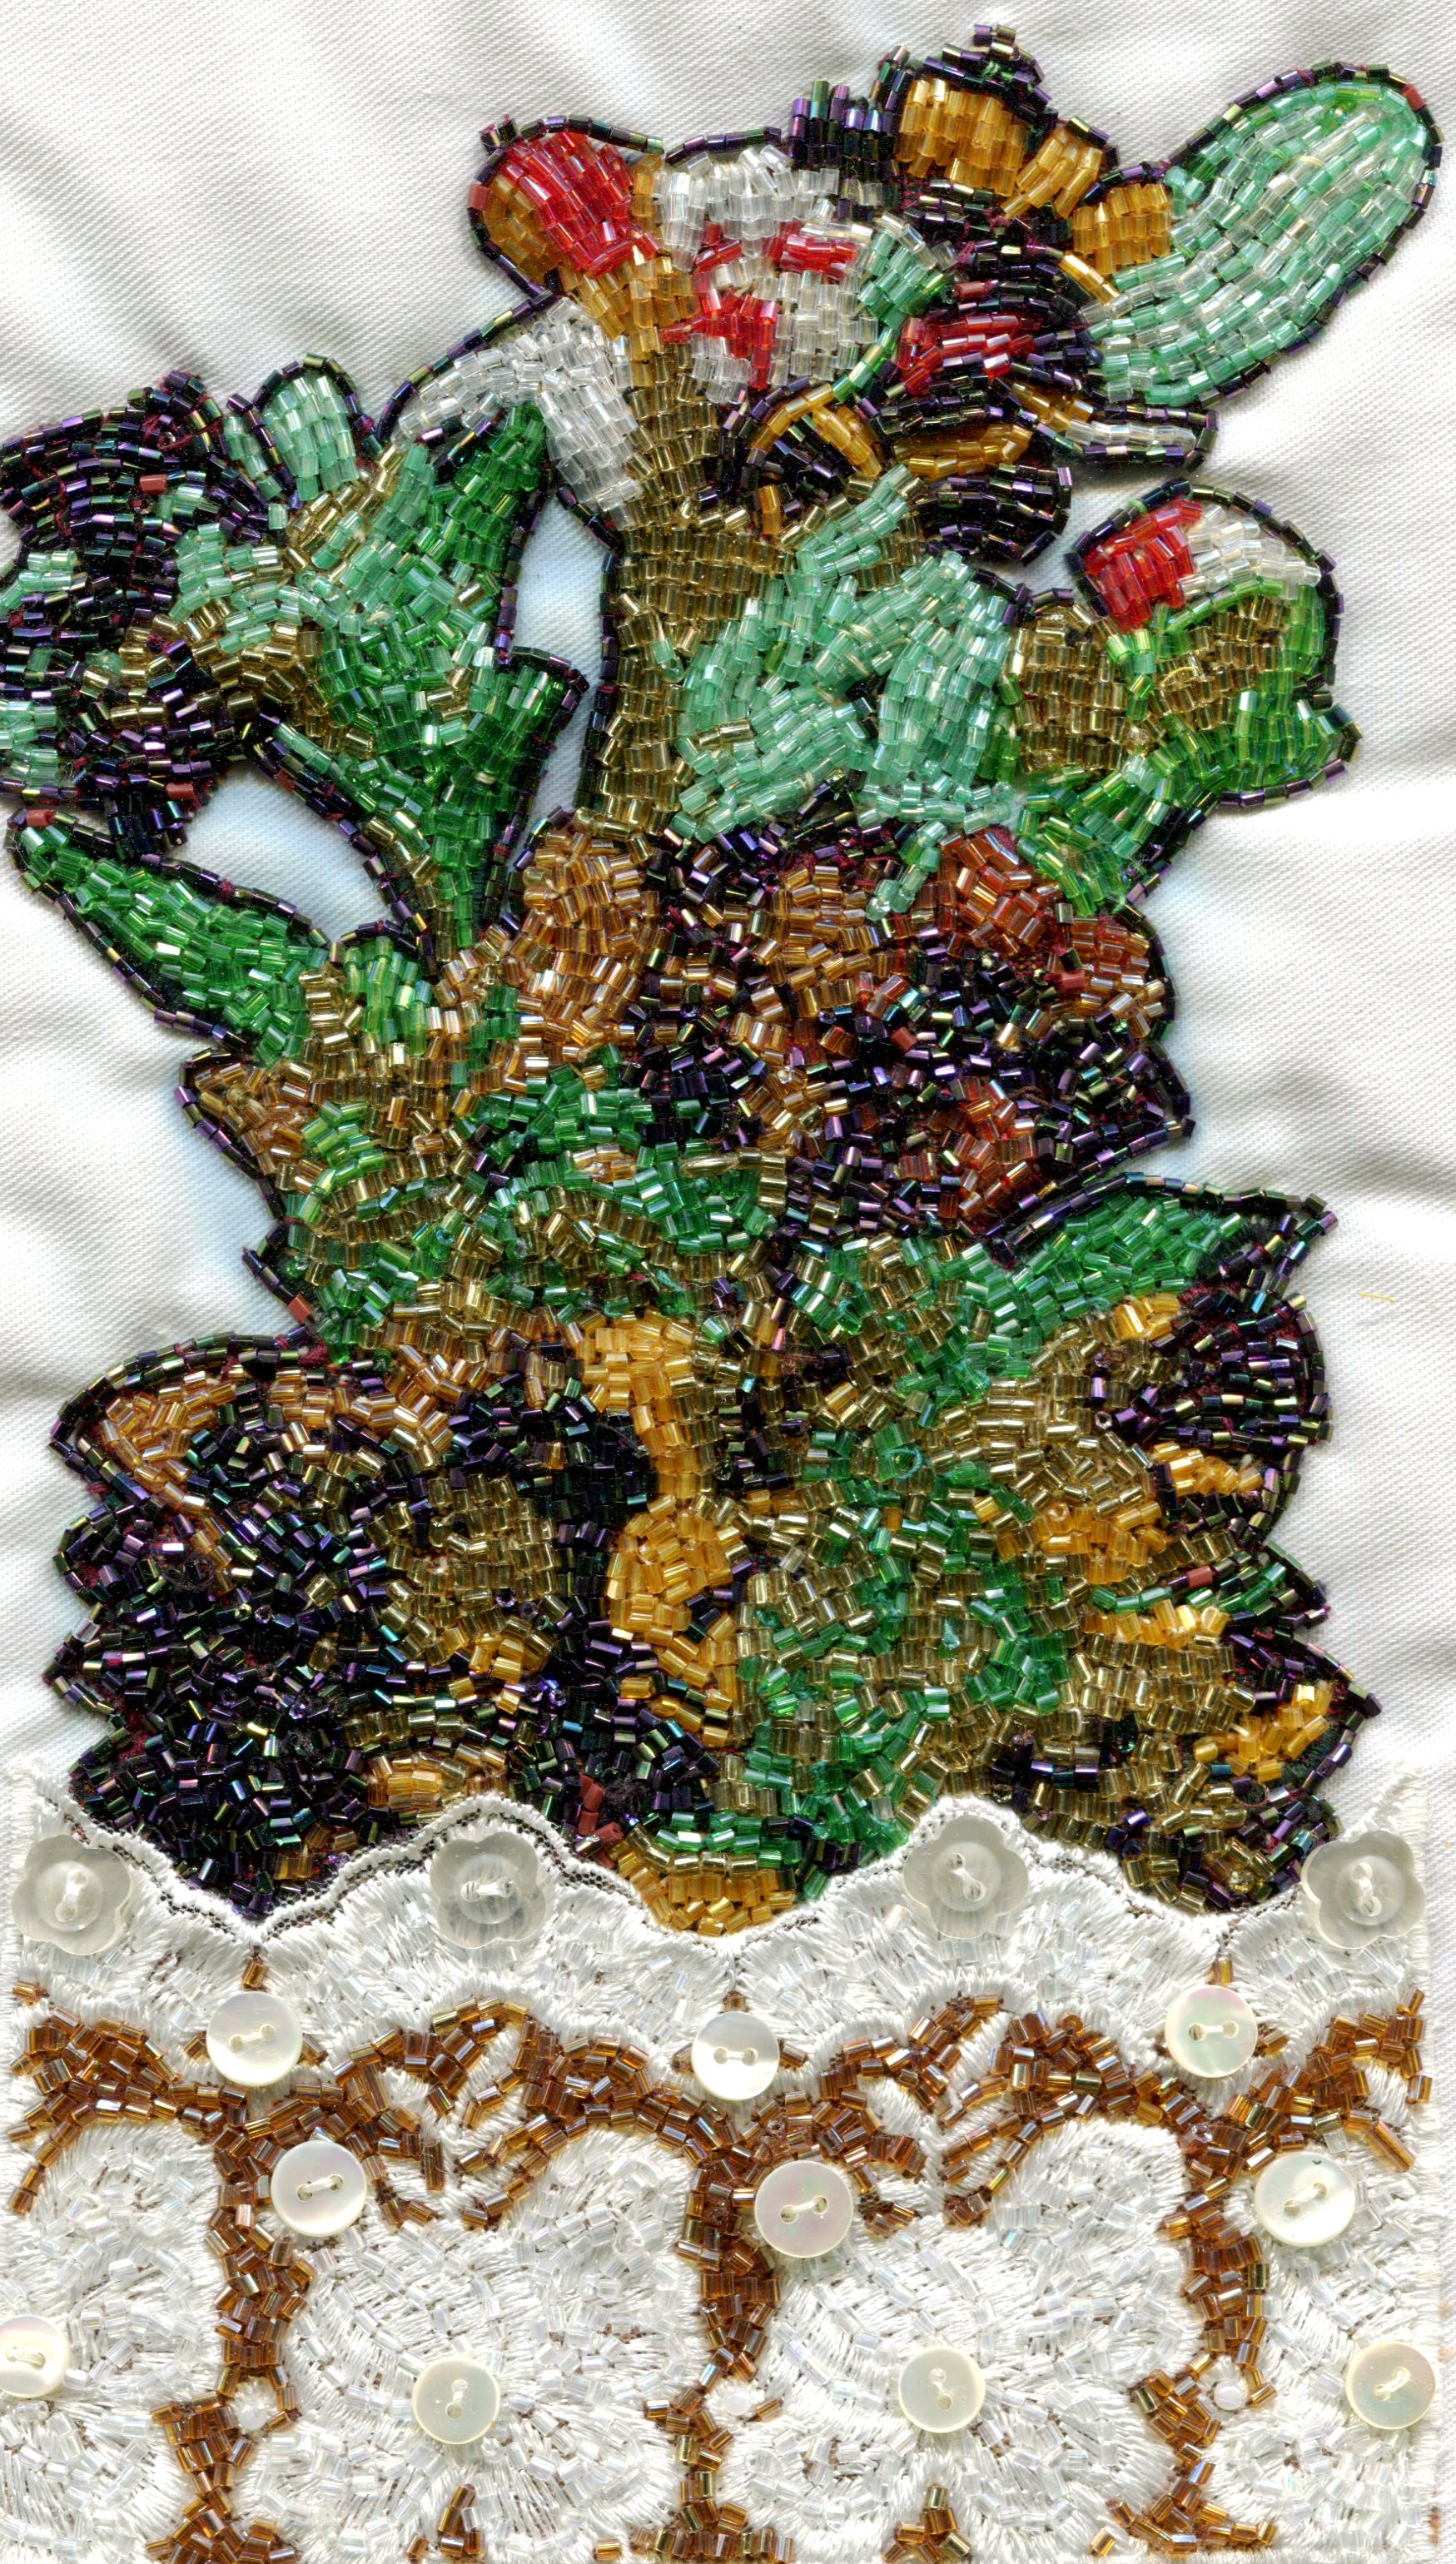 39B BEAUTY SEKETE, BEAUTYFUL FLOWERS, BEADWORK ON FABRIC